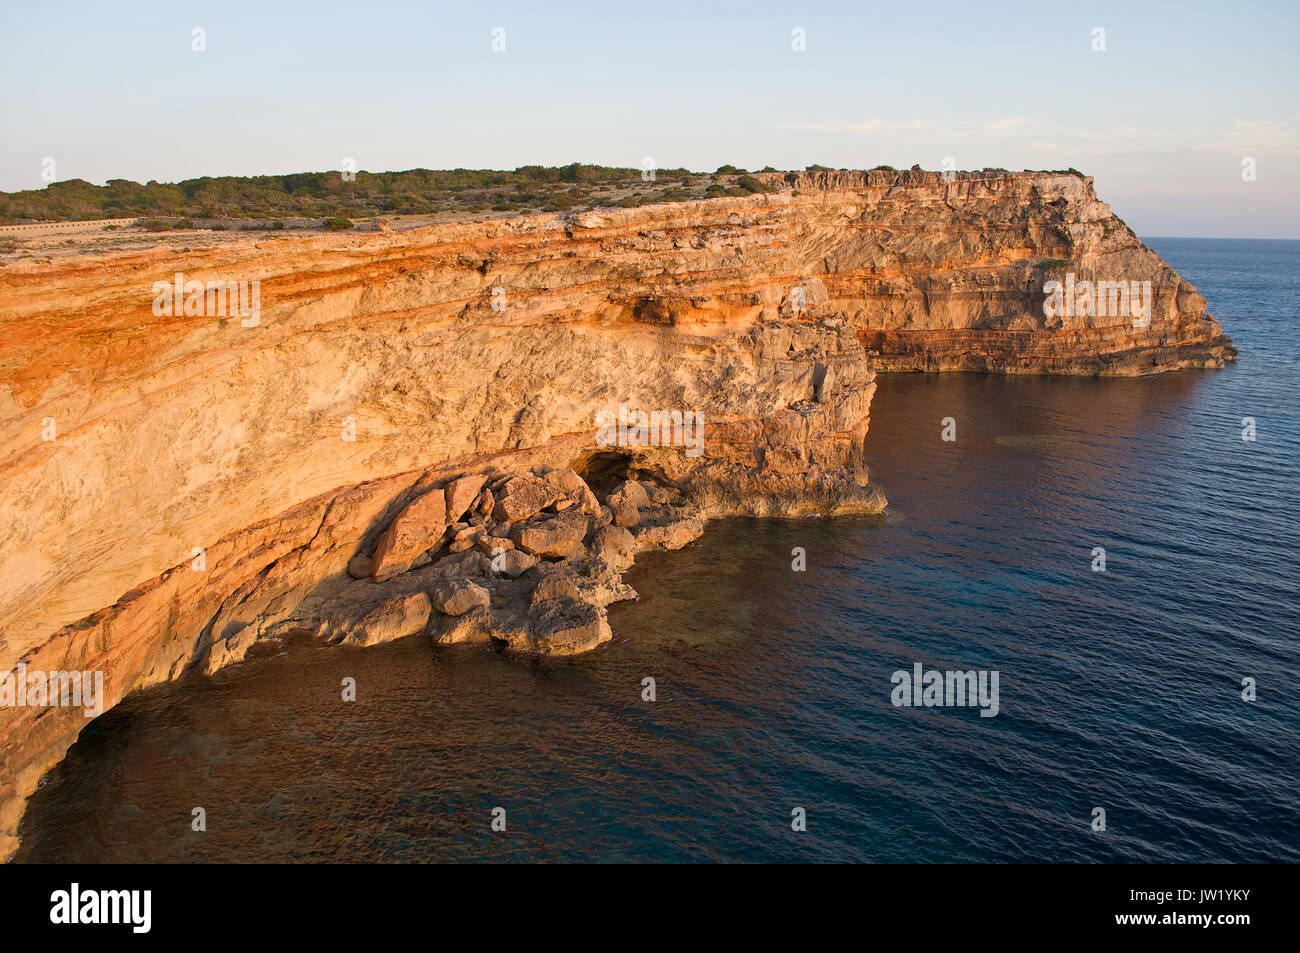 Dusk at Racó Alt cliffs at Formentera (Balearic Islands, Spain) - Stock Image